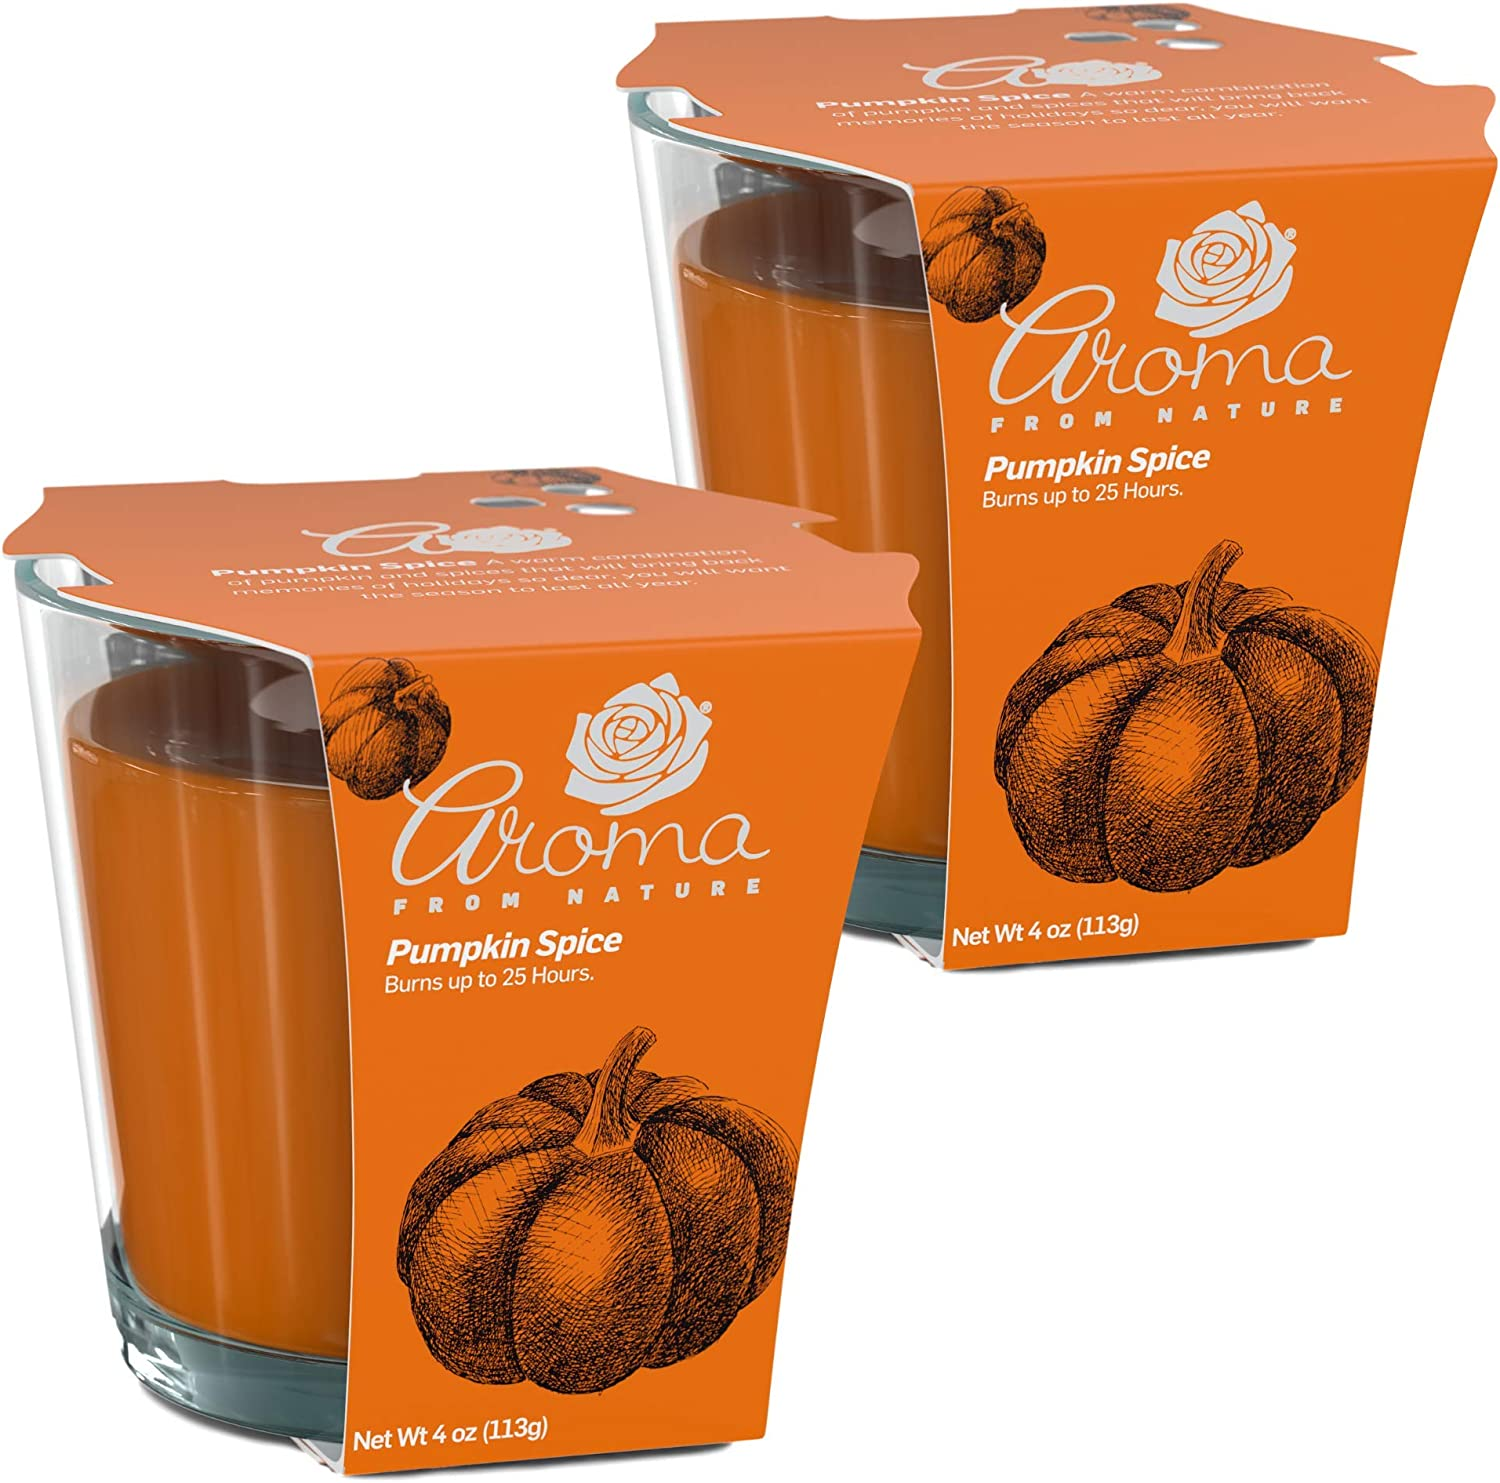 Aroma From Nature Pumpkin Spice 4 oz